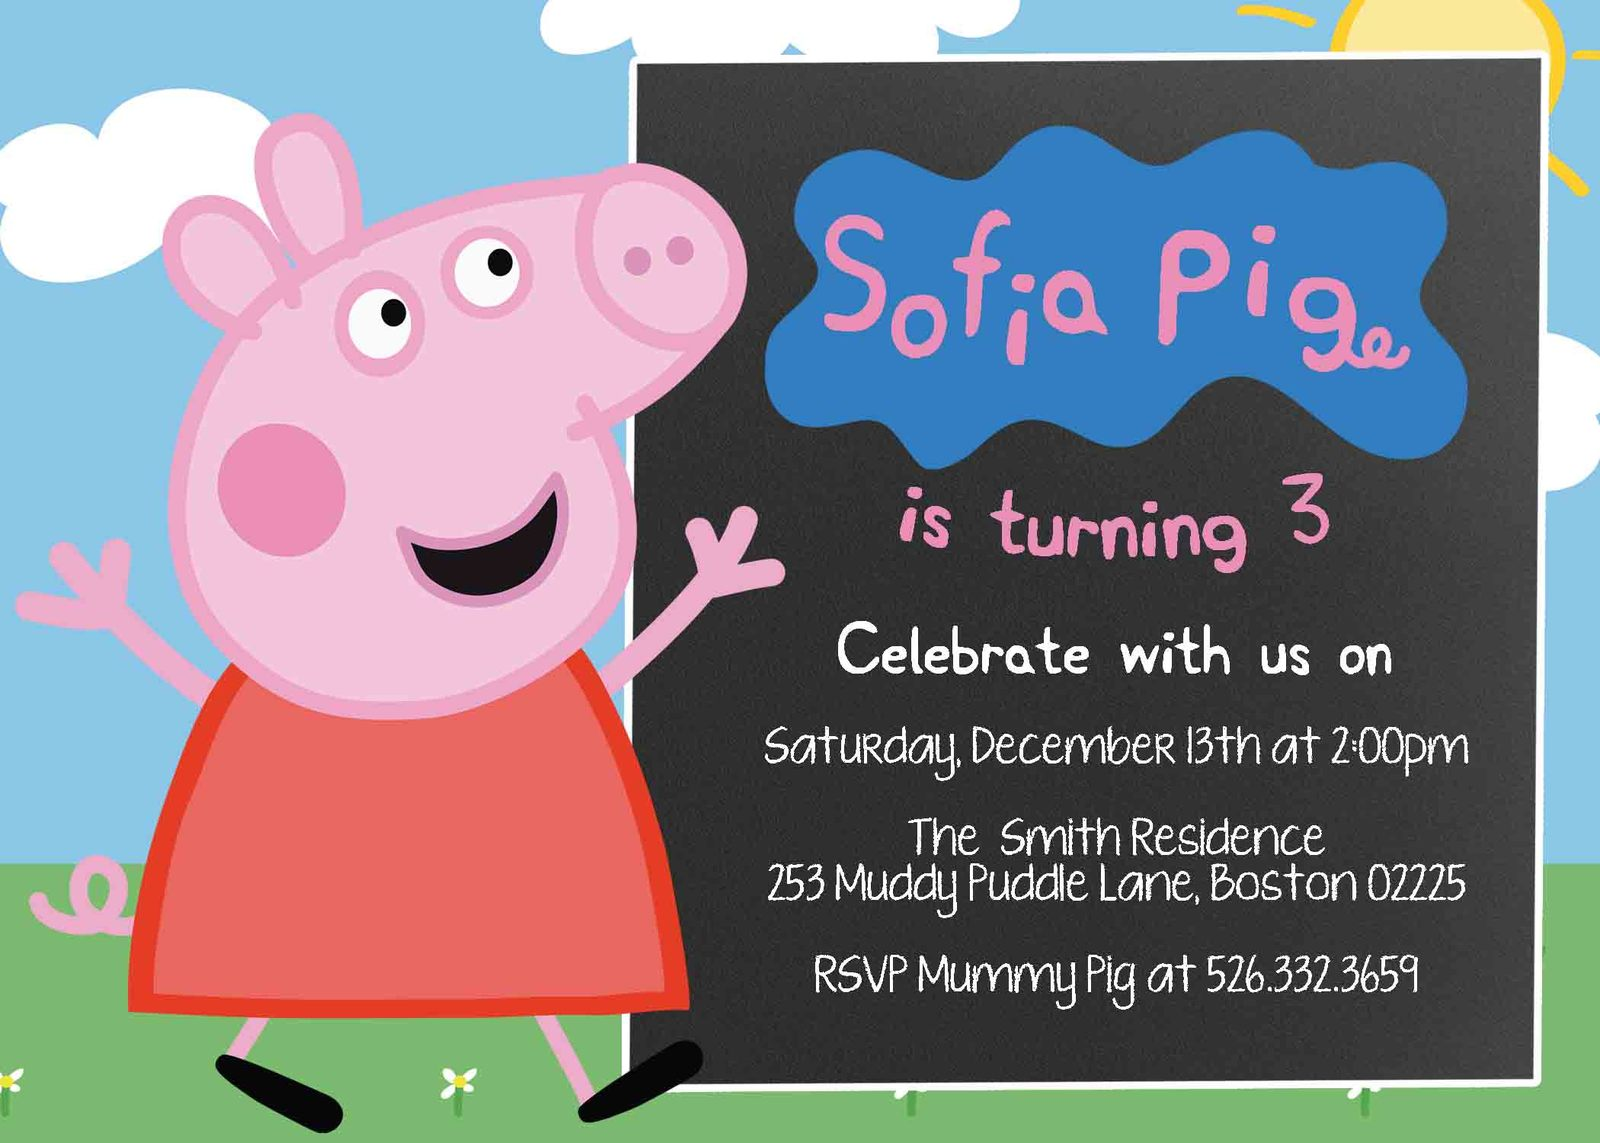 Peppa Pig Birthday Party Invitation: Personalized, Chalkboard - Invitations & Announcements